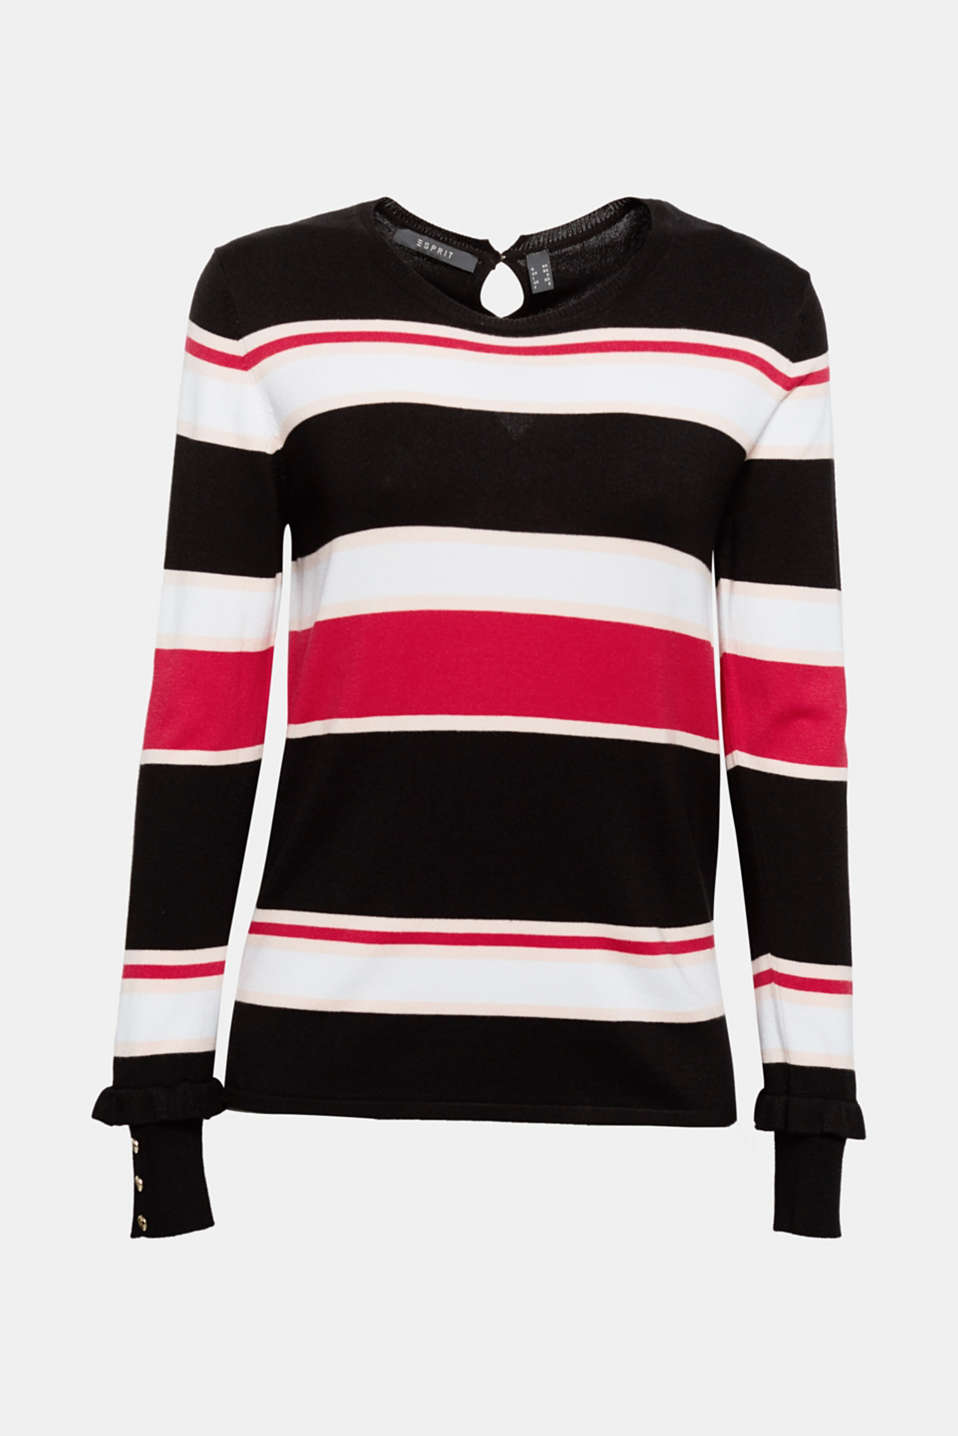 Frills on the sleeve cuffs give this jumper–in plain or striped–a fashion kick!